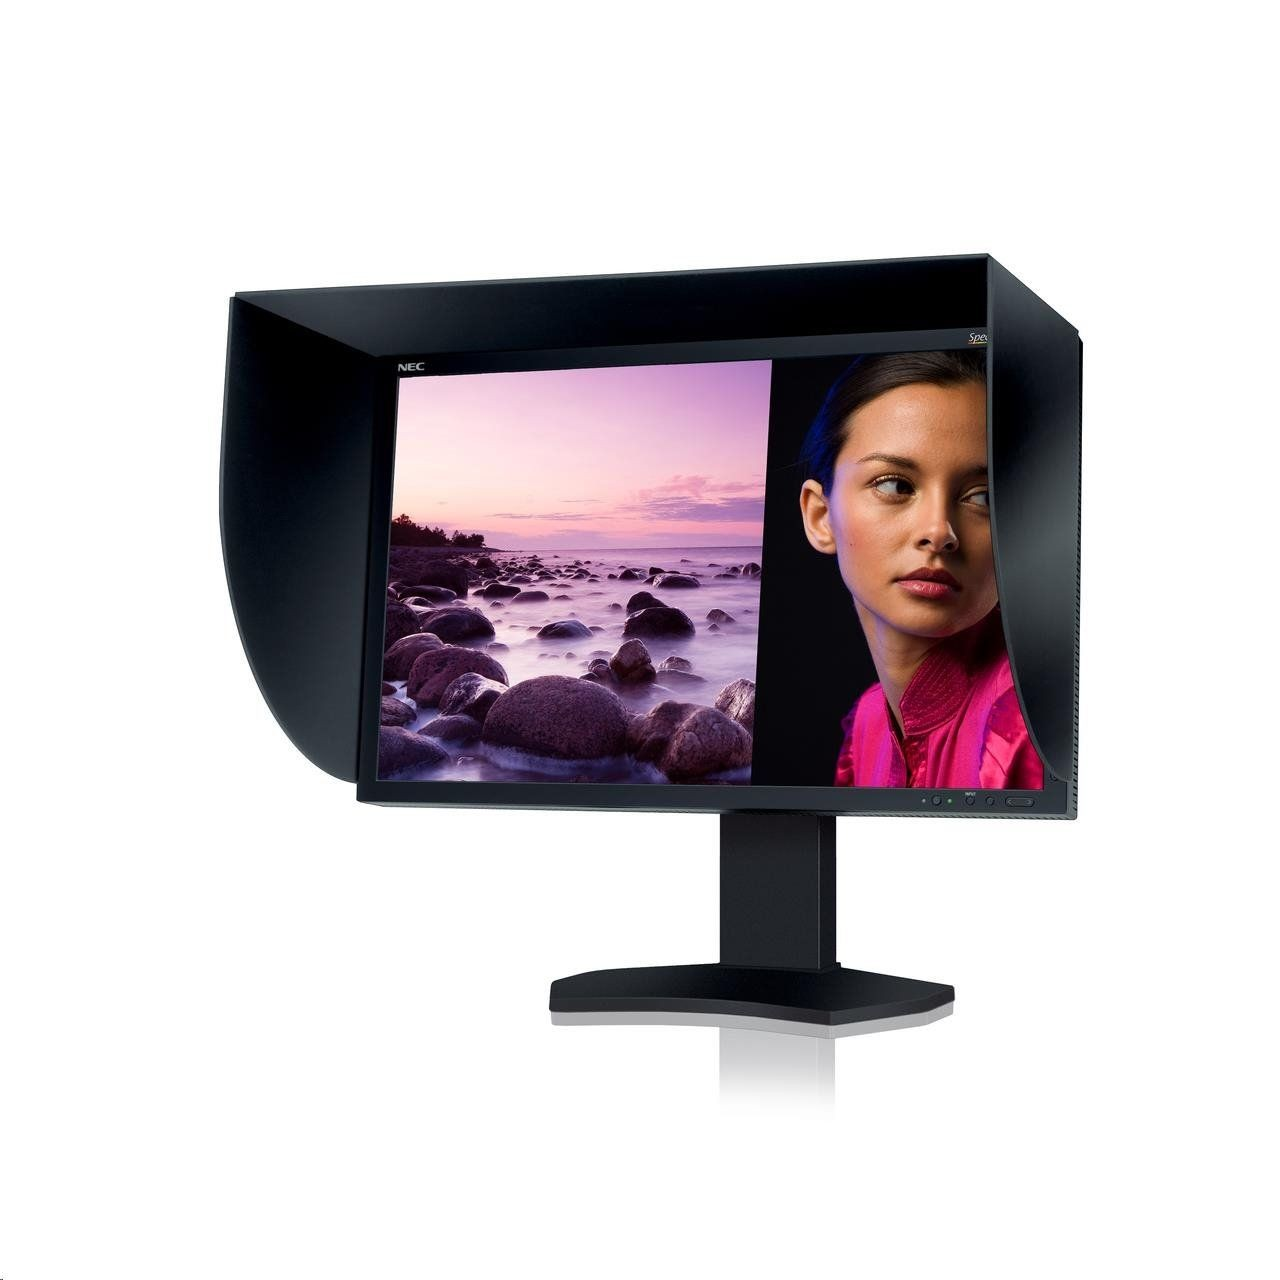 NEC 30'' LCD SpectraView Reference 10-bit AH-IPS GB-R LED 16:10